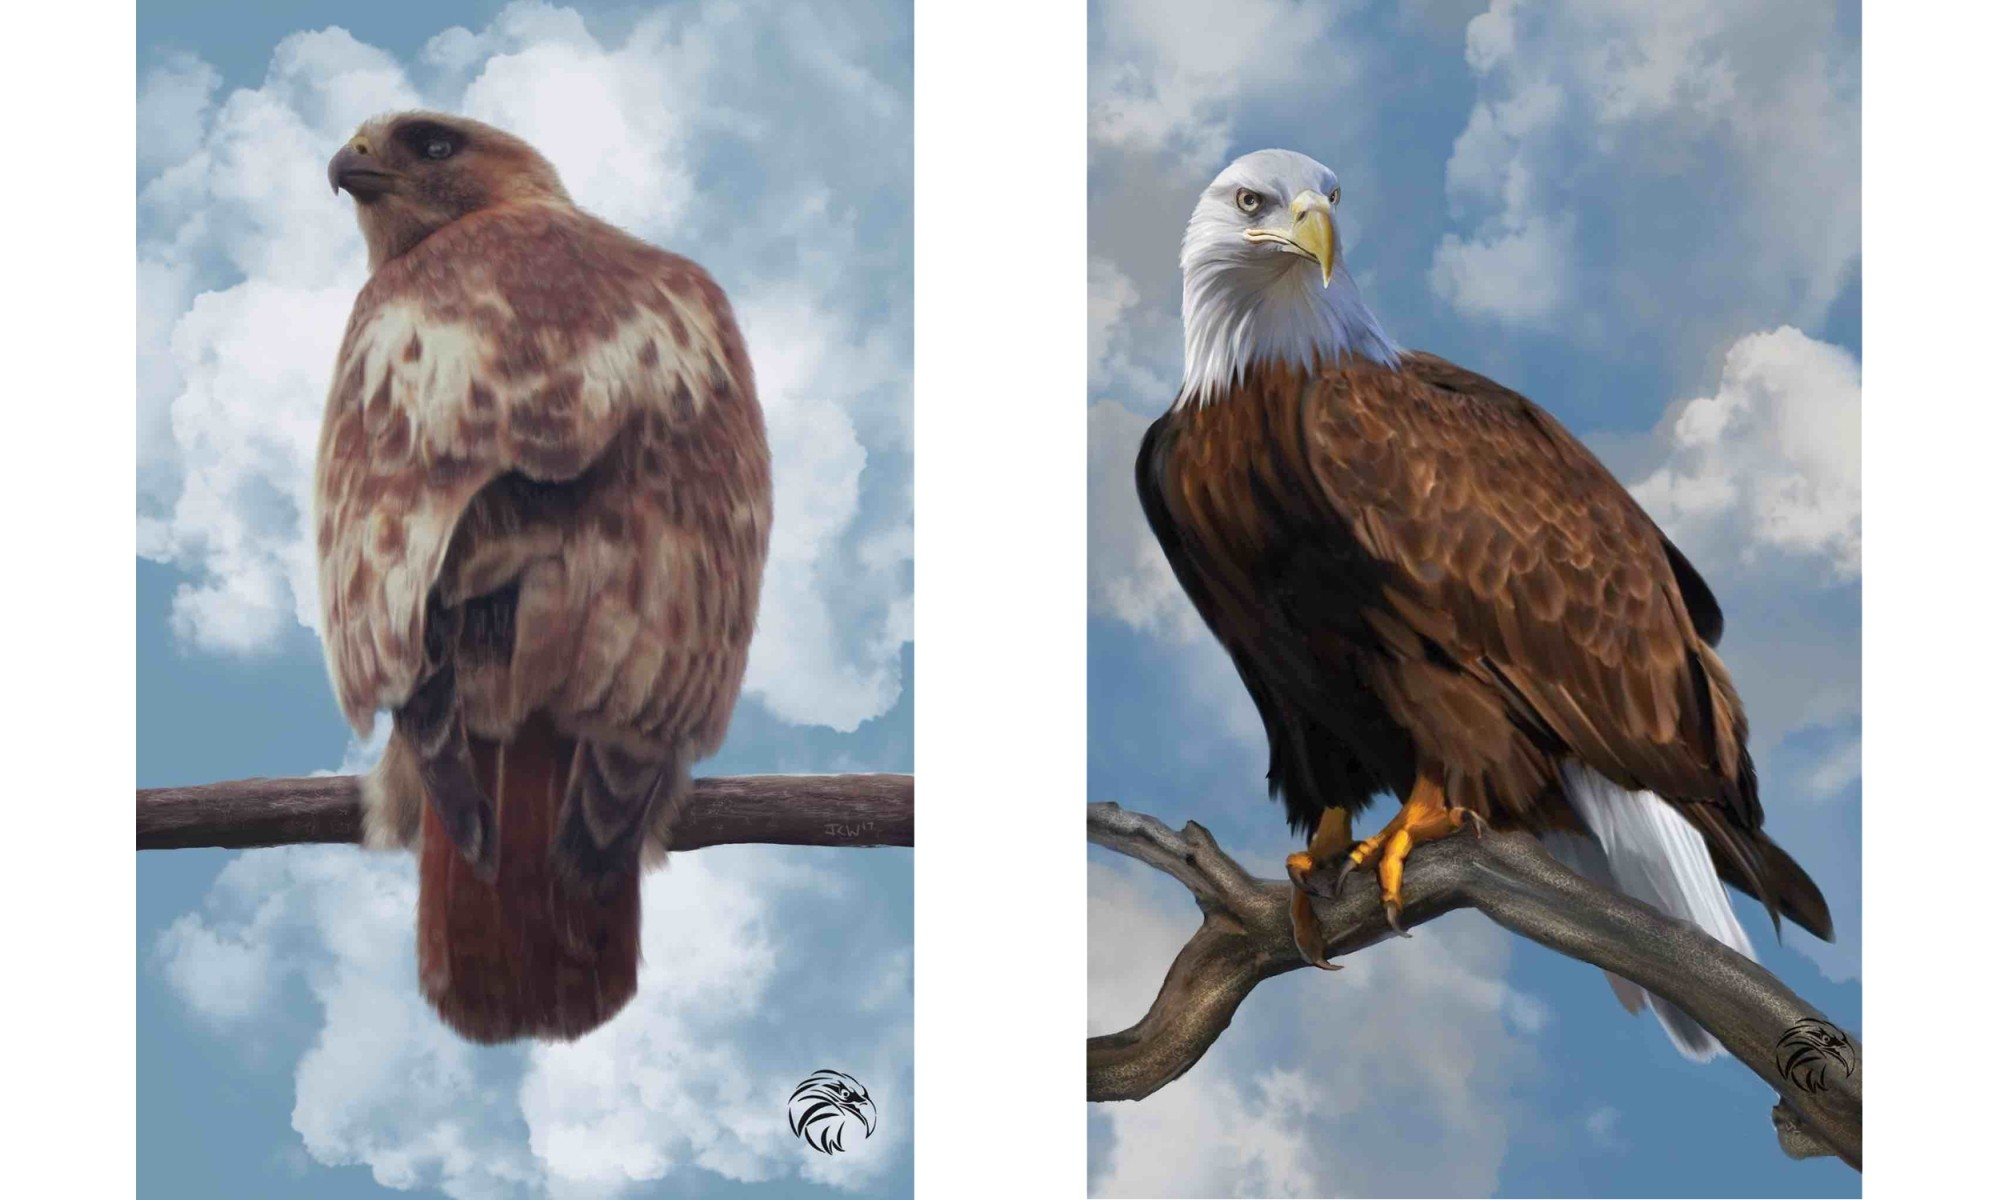 Jeremy Walpole's Red-tailed Hawk & The Eagle Stare